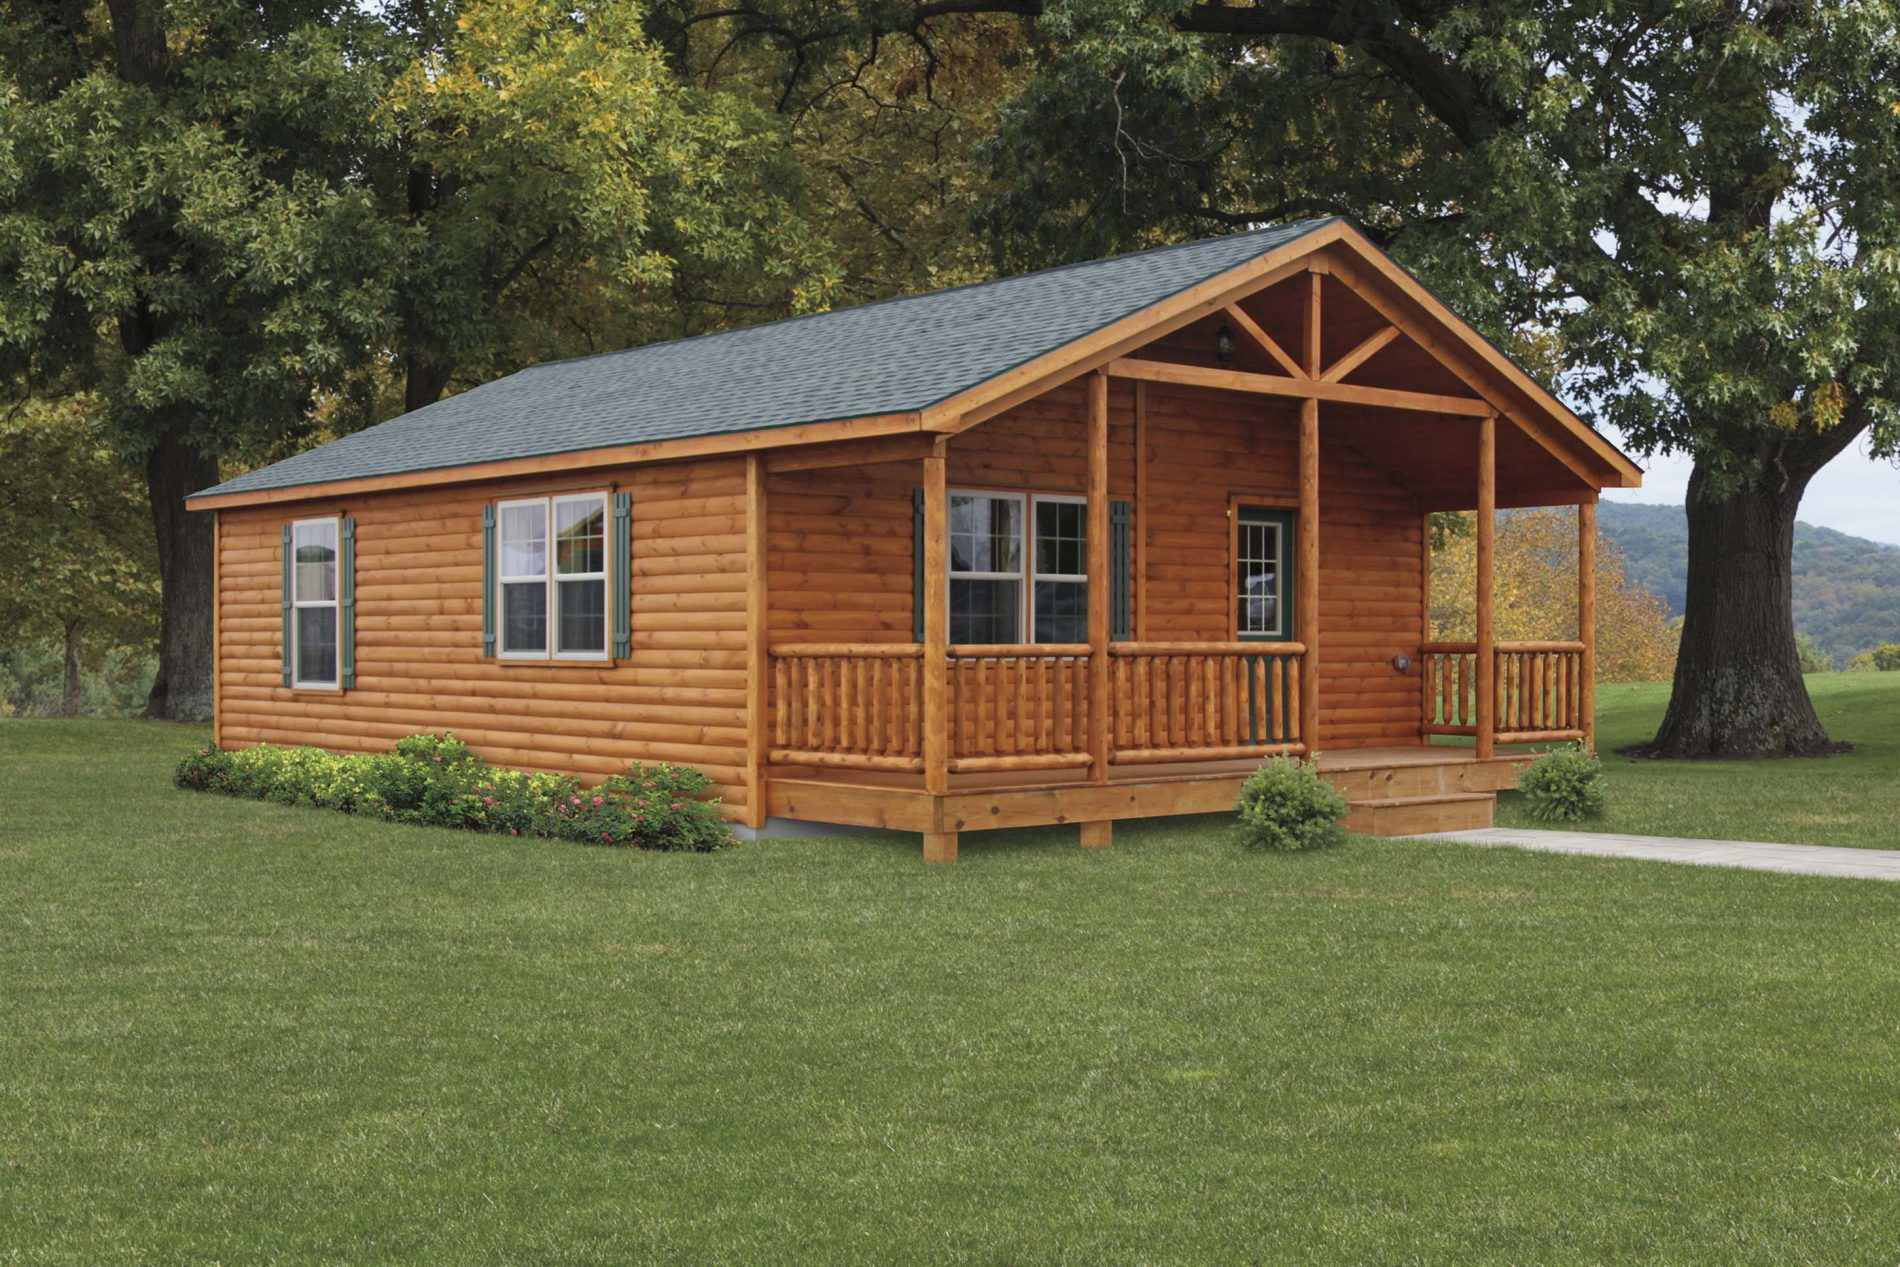 manufacturers katahdin sebec plans home homes cabins cedar cabin log